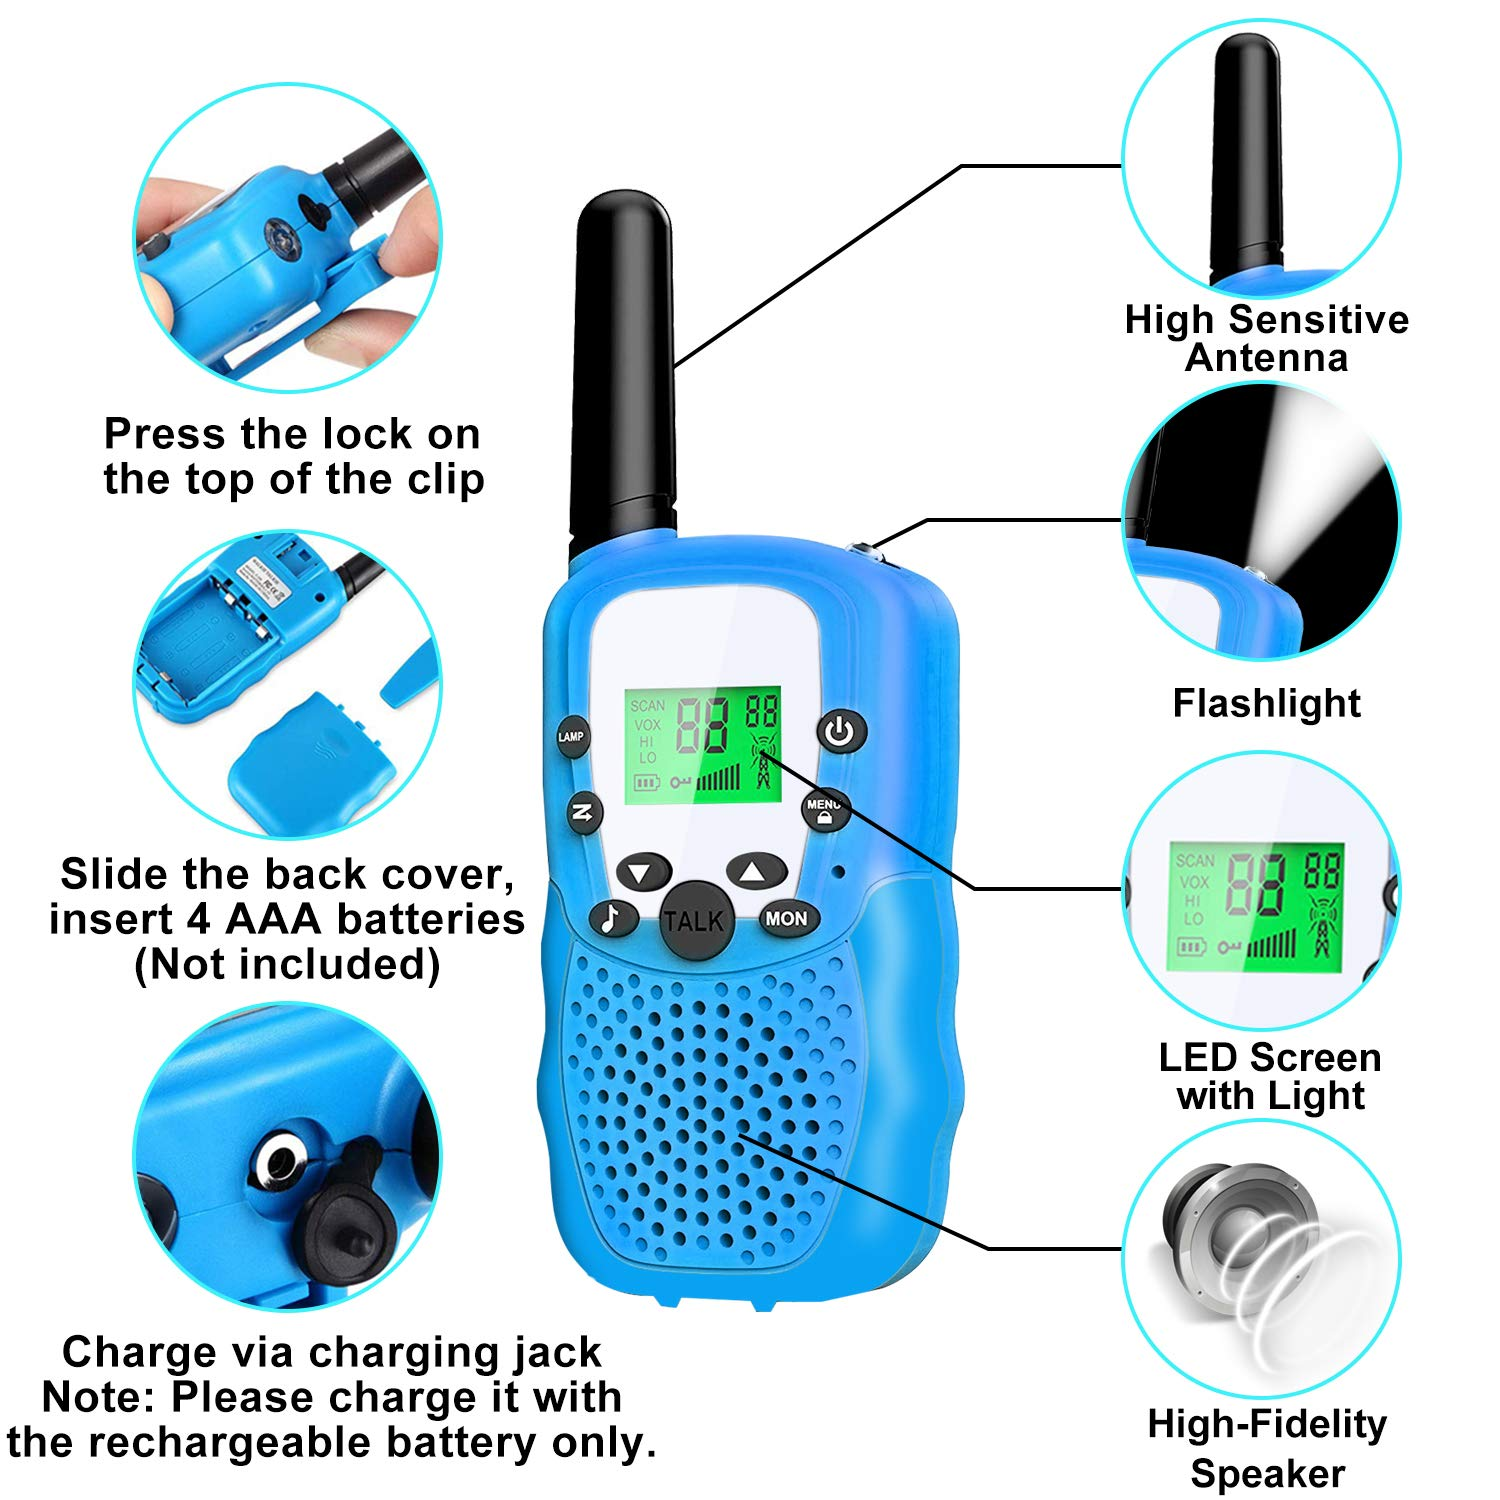 4 Pack Kids Walkie Talkies - 22 Channels 2 Way Radio Long Range Kids Toys, Handheld Child Walkie Talkies for Boys Girls with Flashlight for Sport Outdoor Camping Hiking Prime Electronic Toy Gifts by AMENON (Image #6)